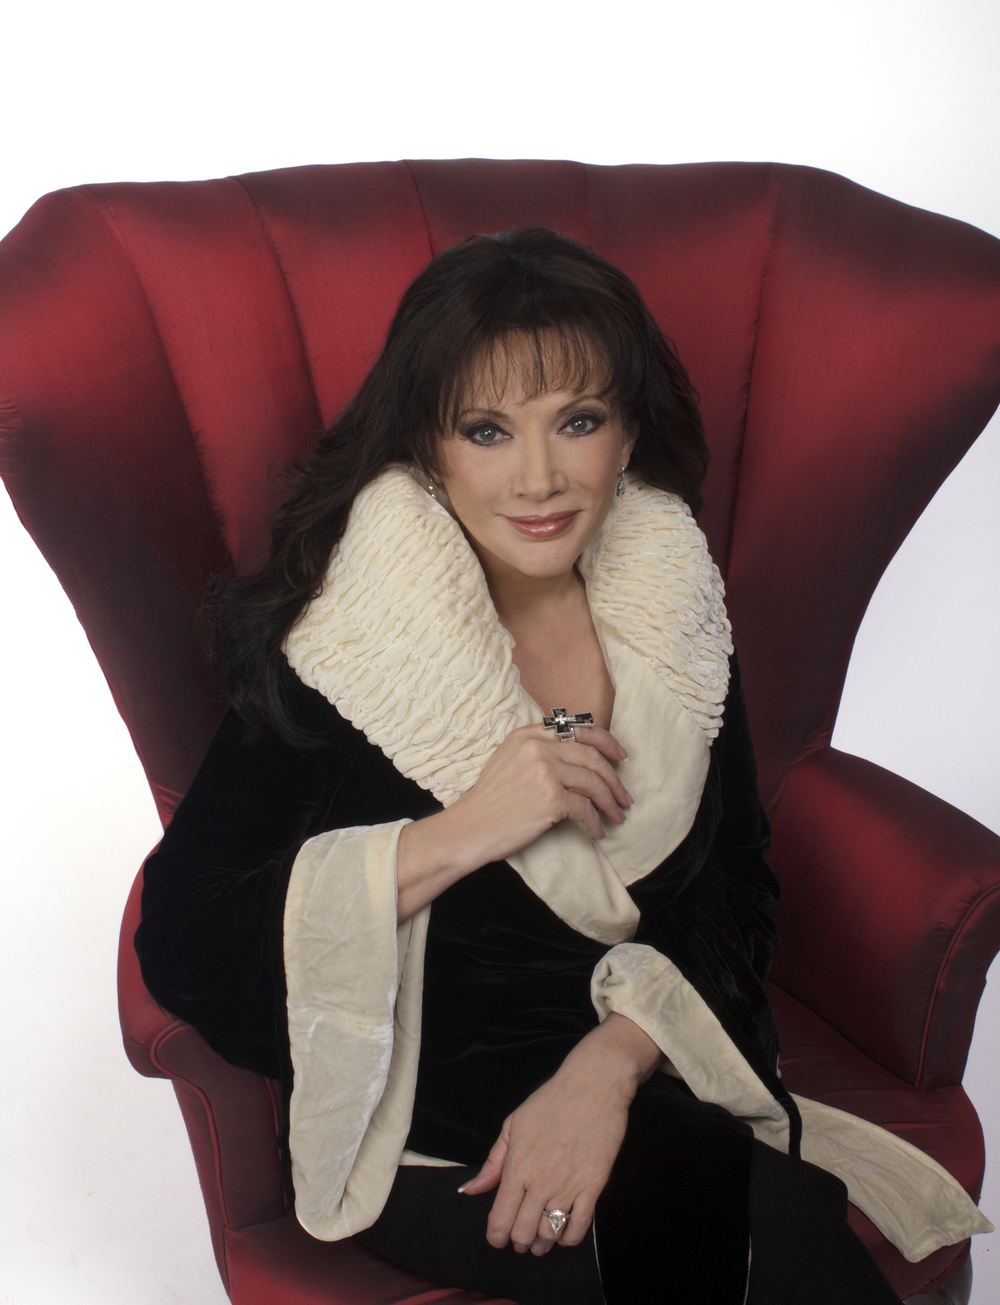 Reba_Red Chair-RT.jpg